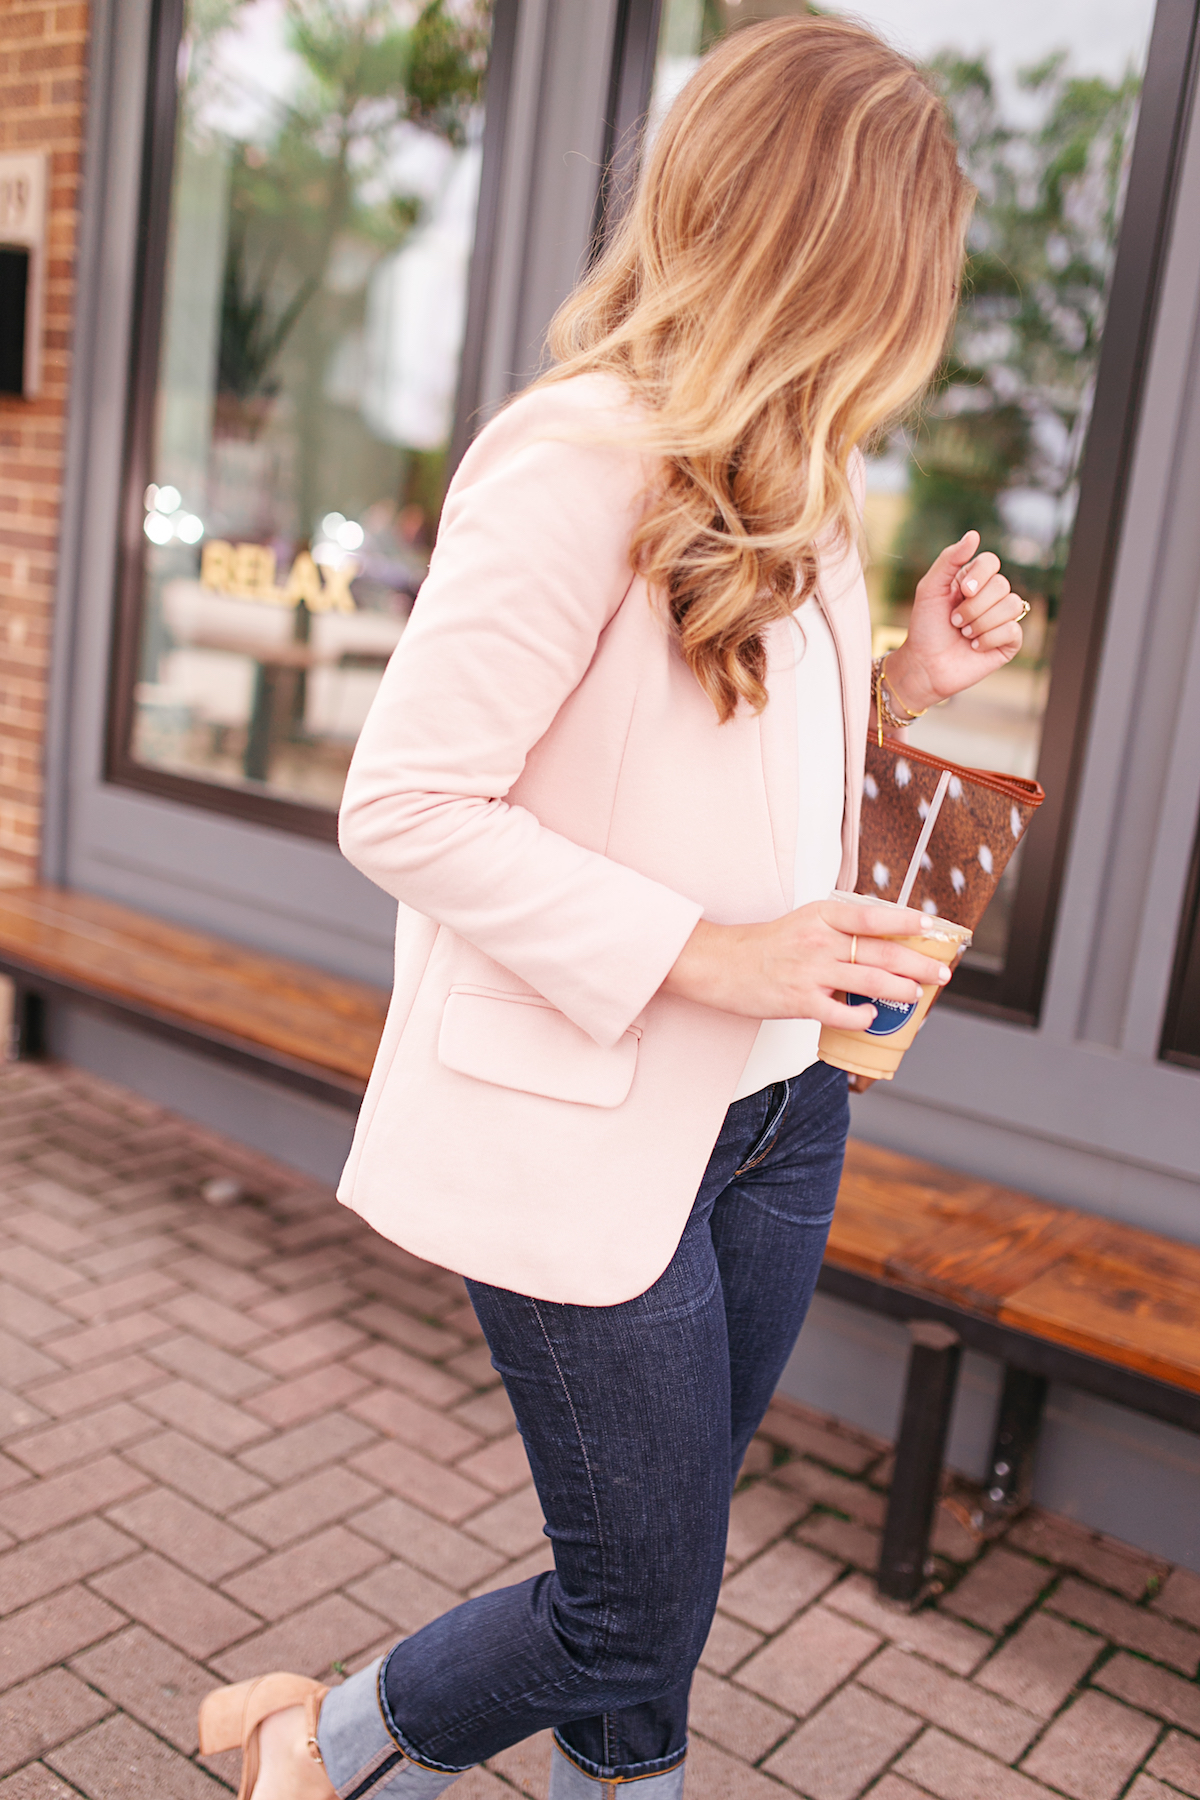 96eb7962b291 This pale pink blazer was a great option. Keep reading for some pink blazer  outfit inspiration.